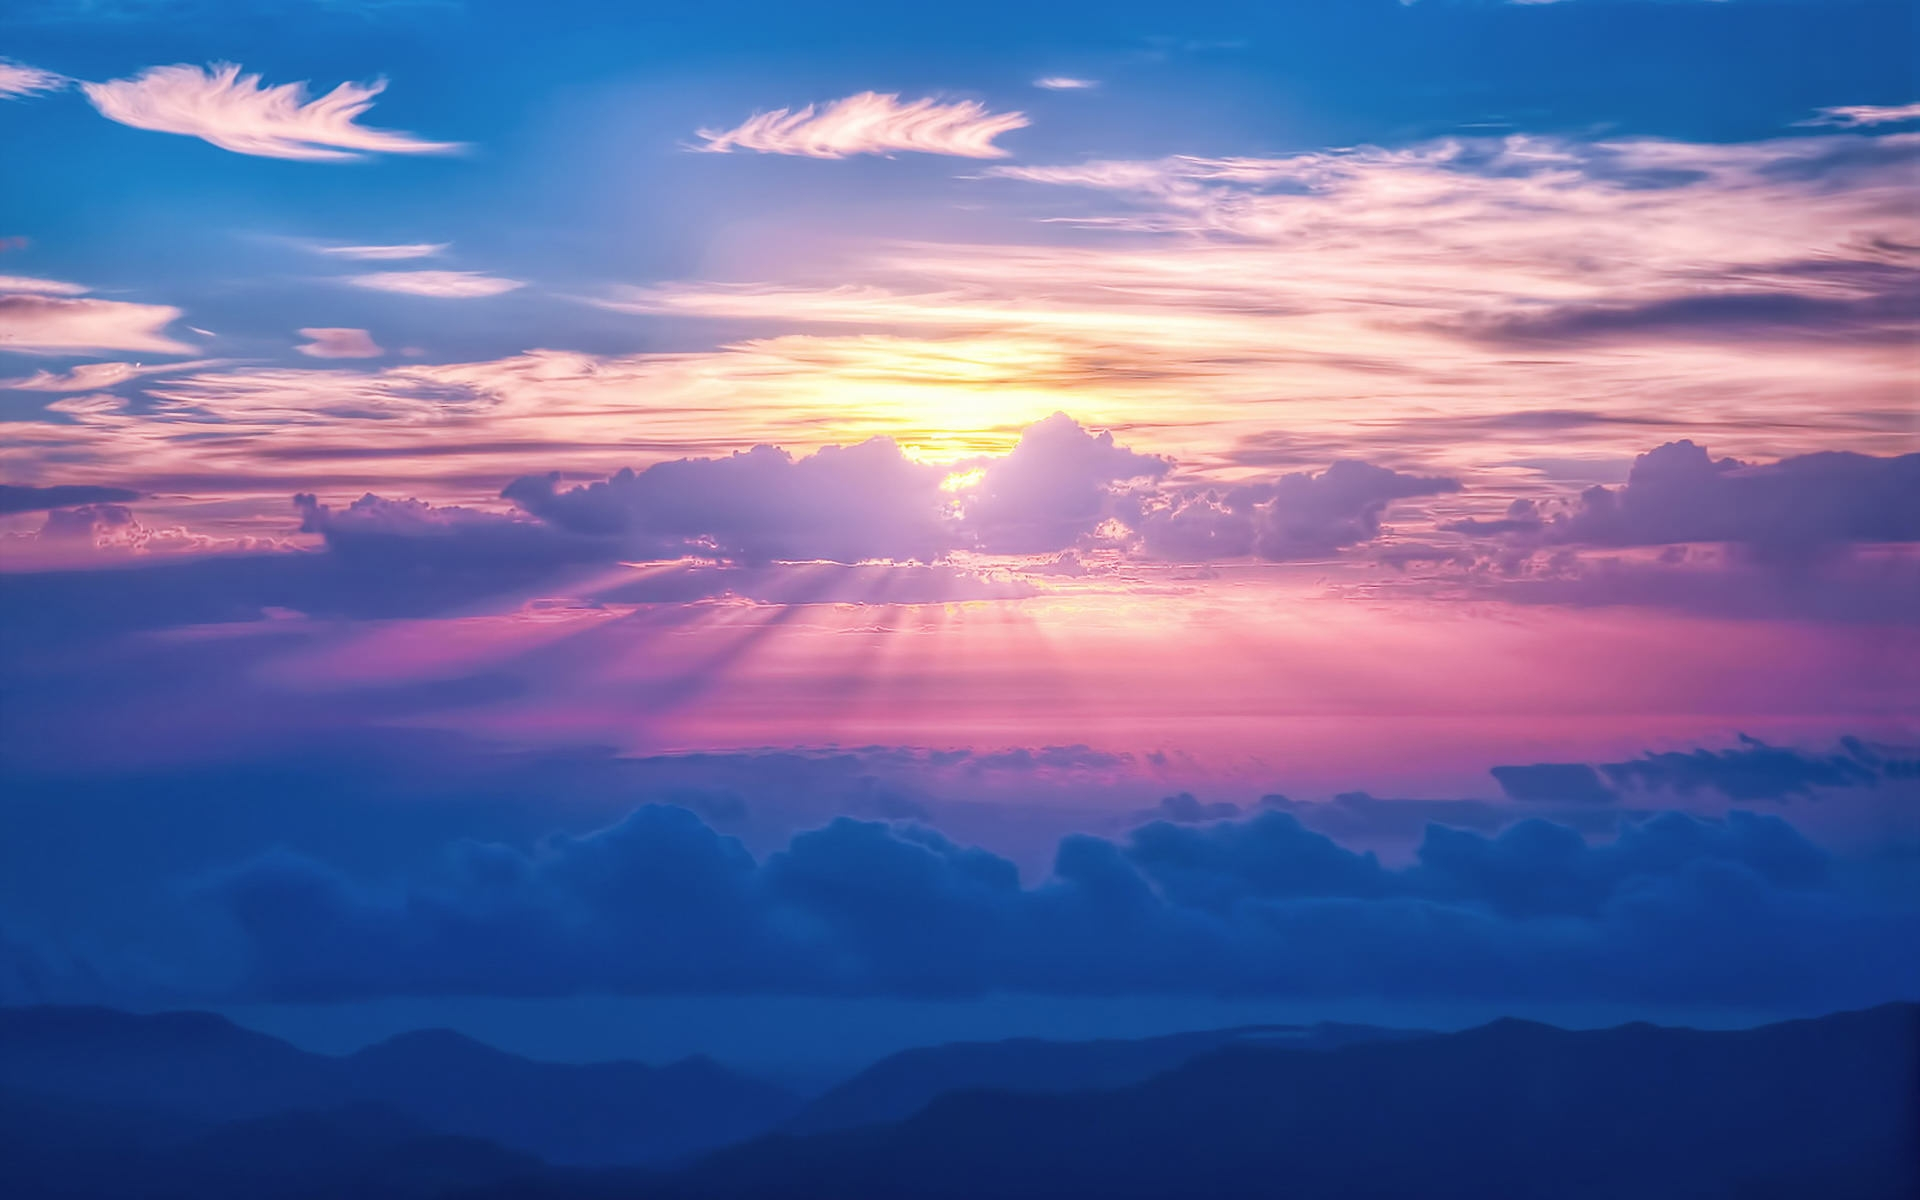 Sun Rays Sky Clouds HD Wallpaper